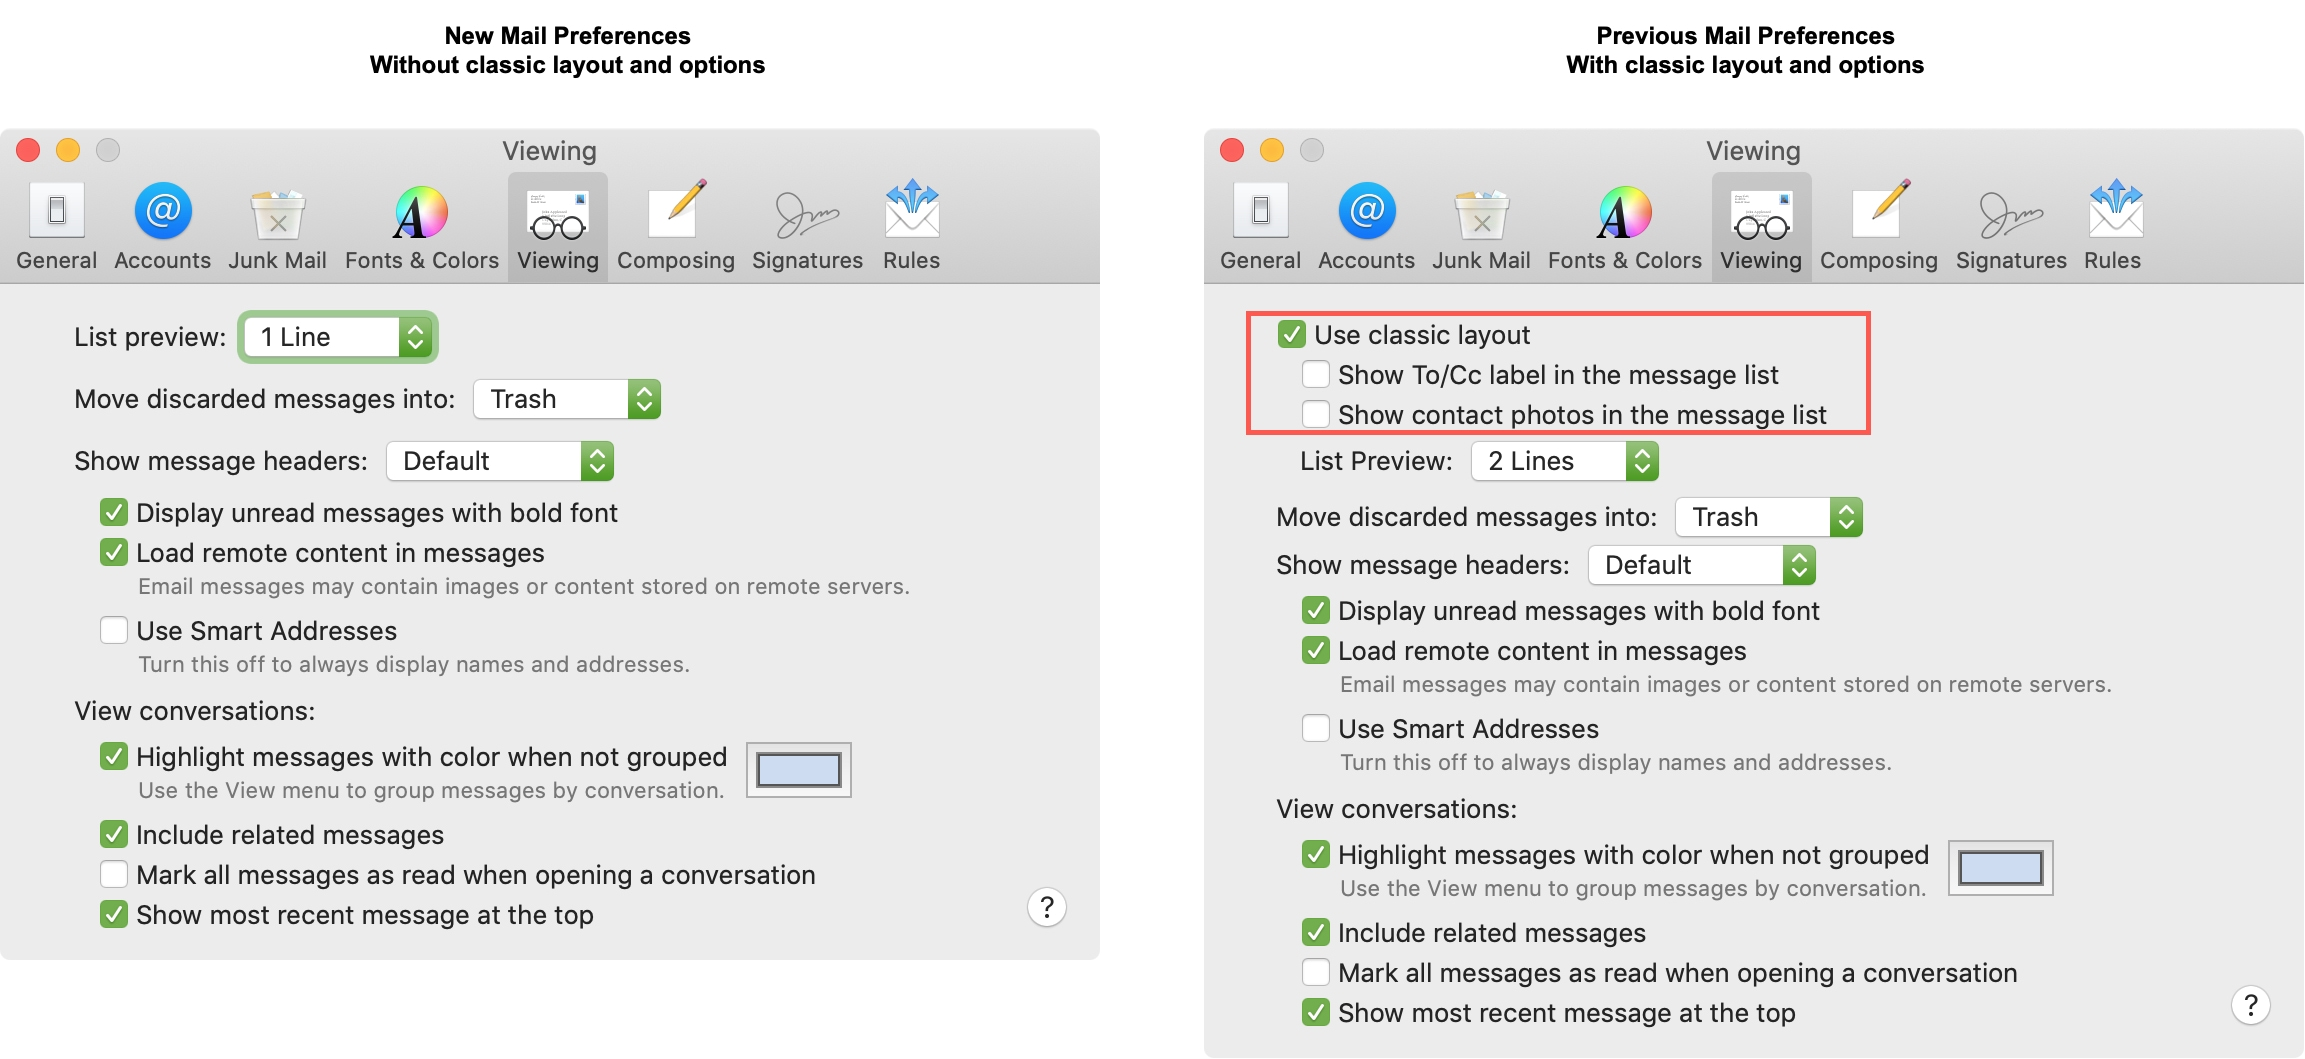 New and Previous Mail Preferences Mac